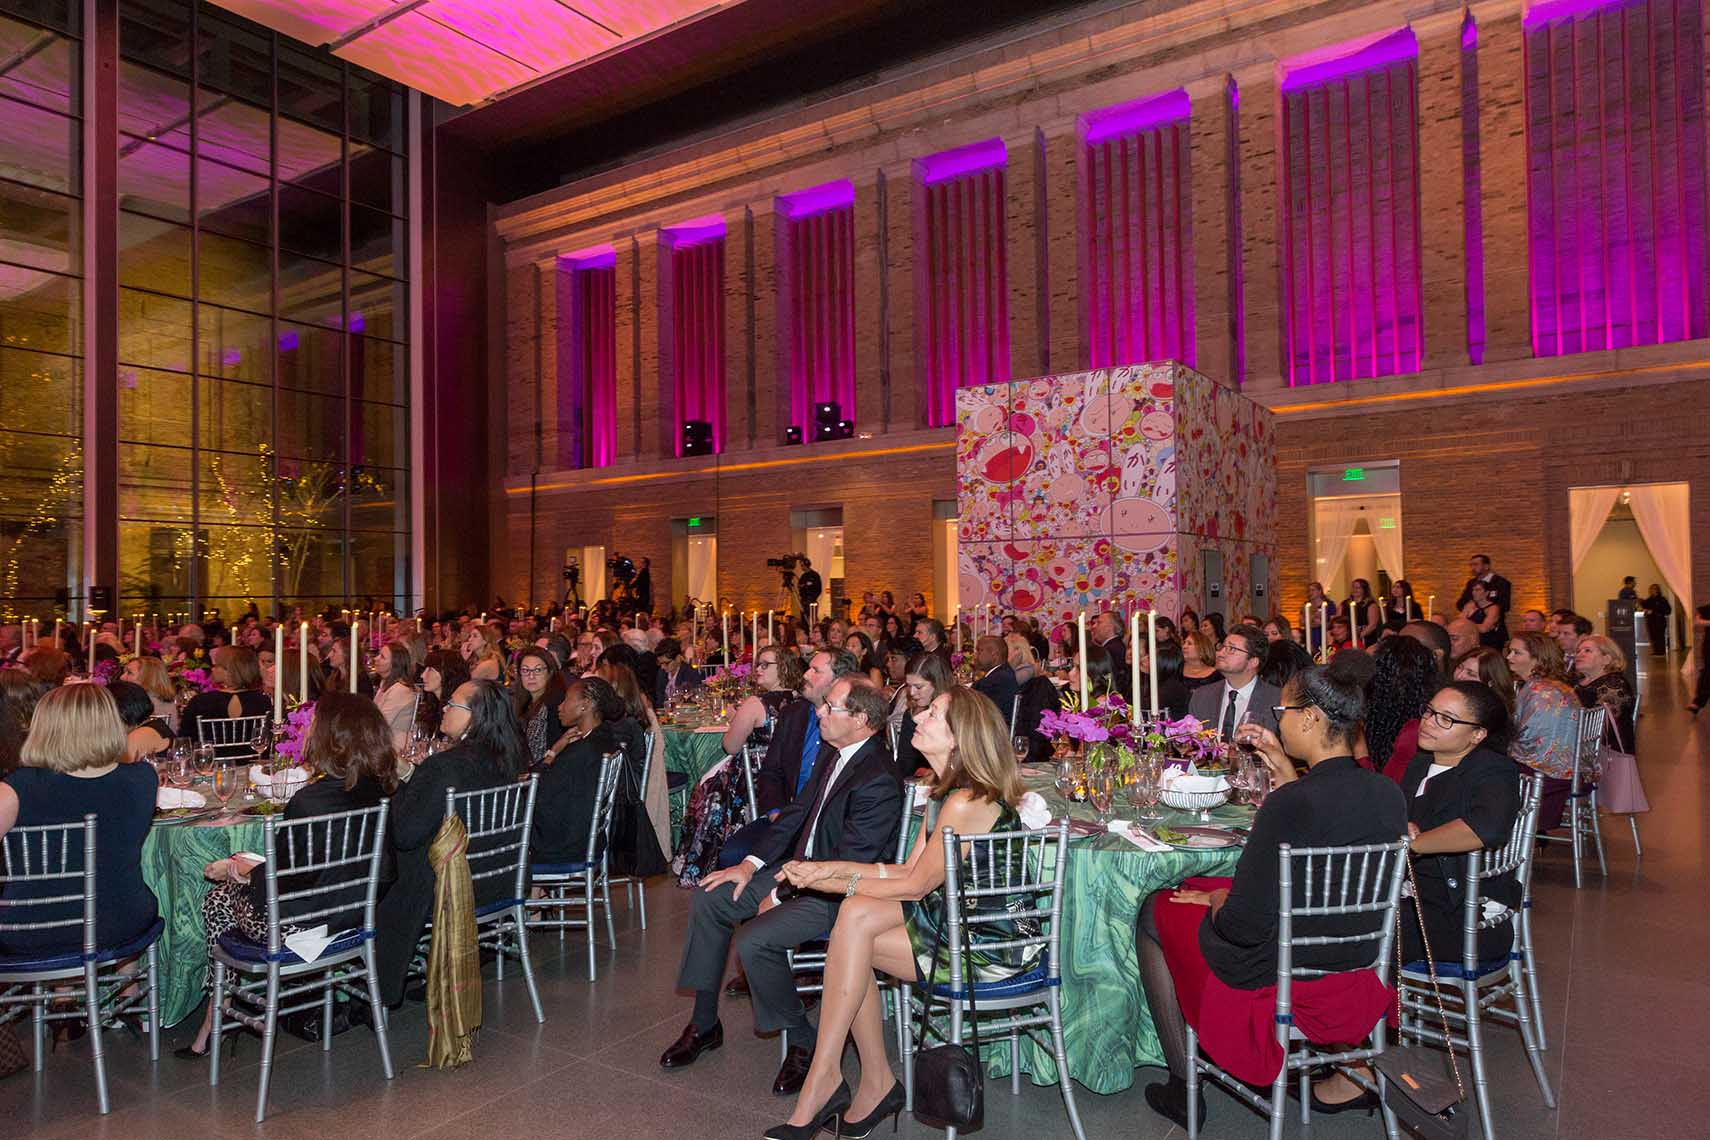 The audience at the Big Sister Gala at the MFA in Boston